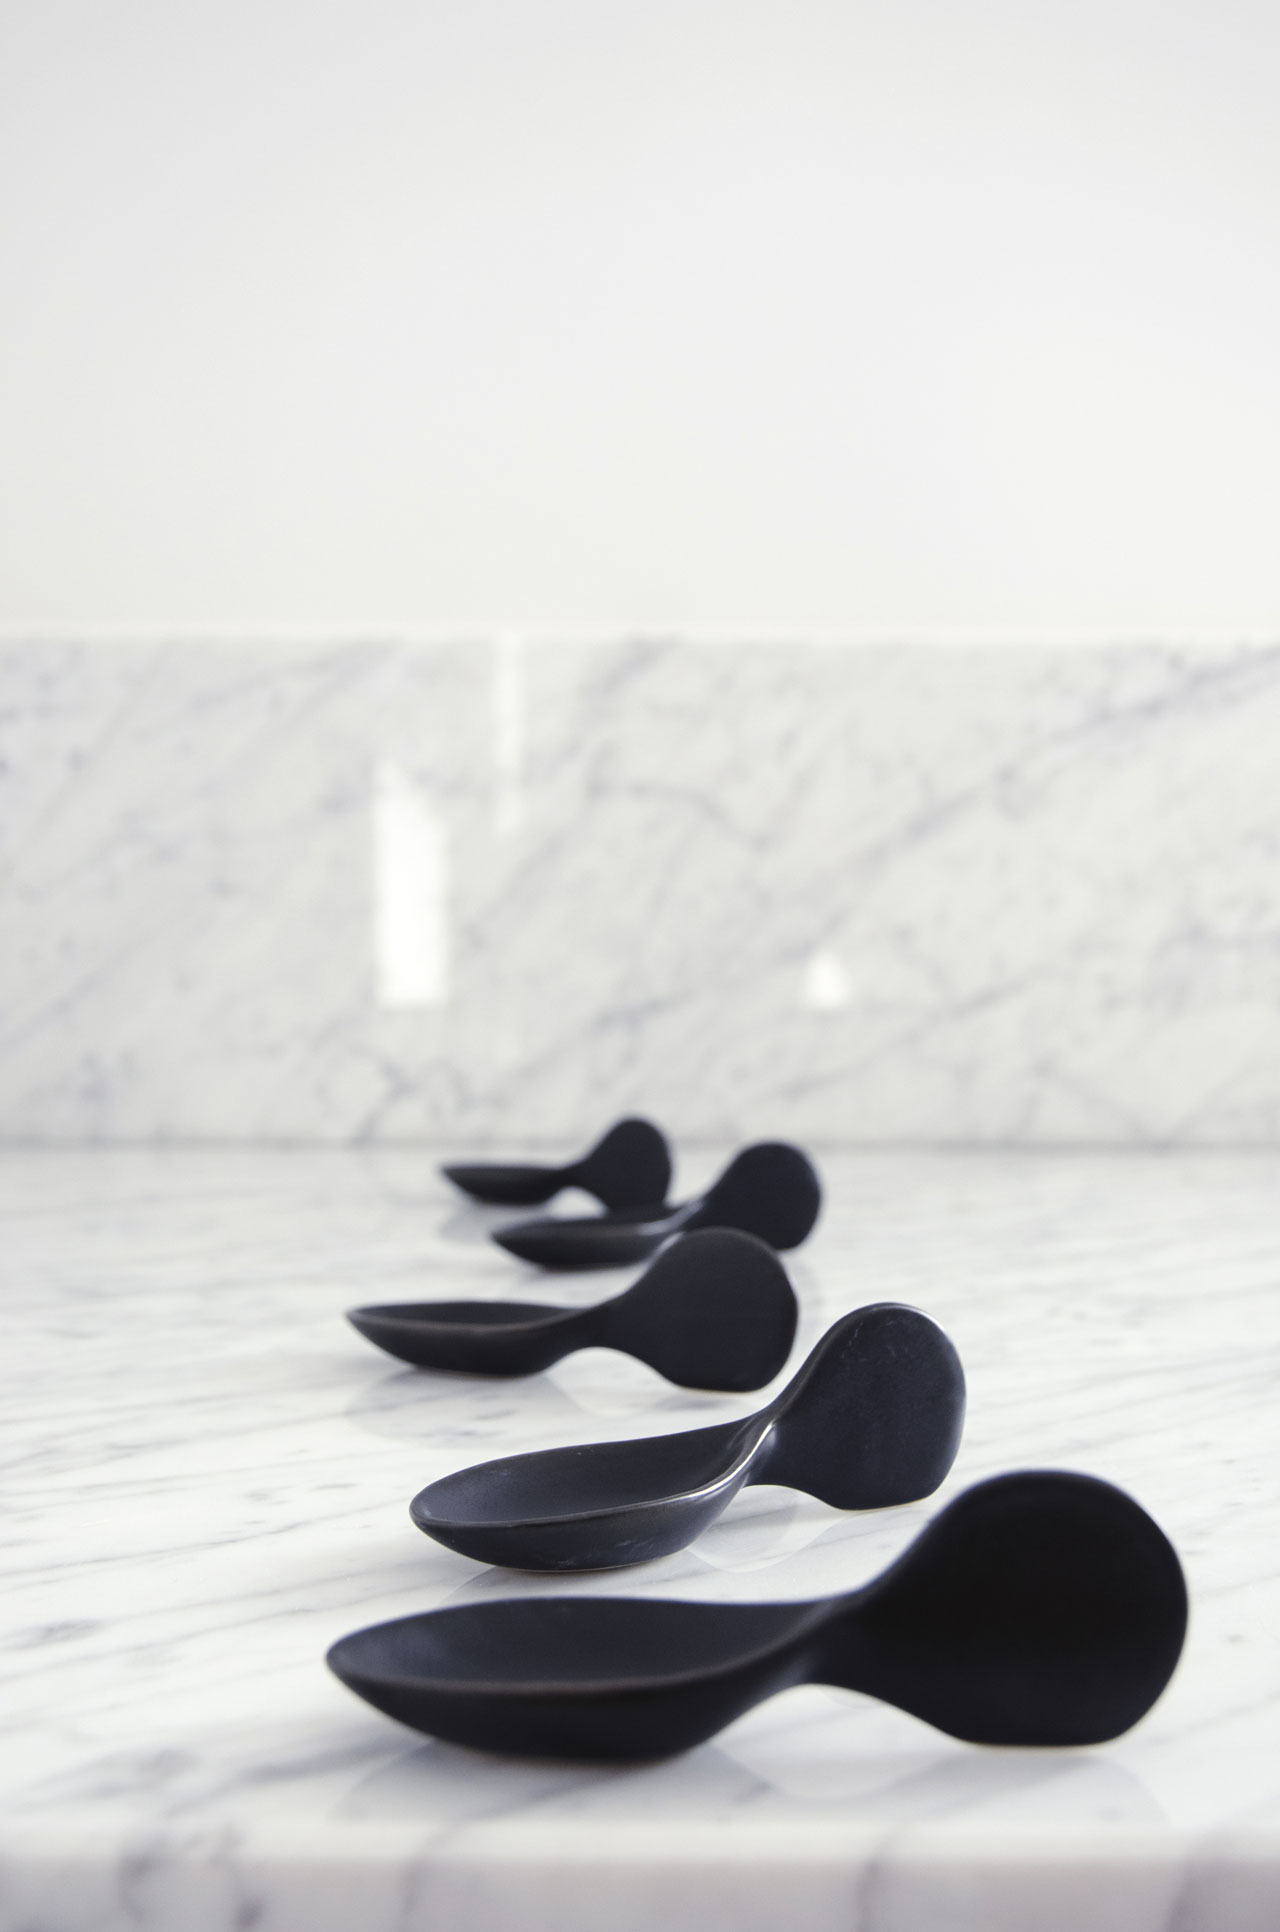 Ceramic Coctail Spoons by Mimou.